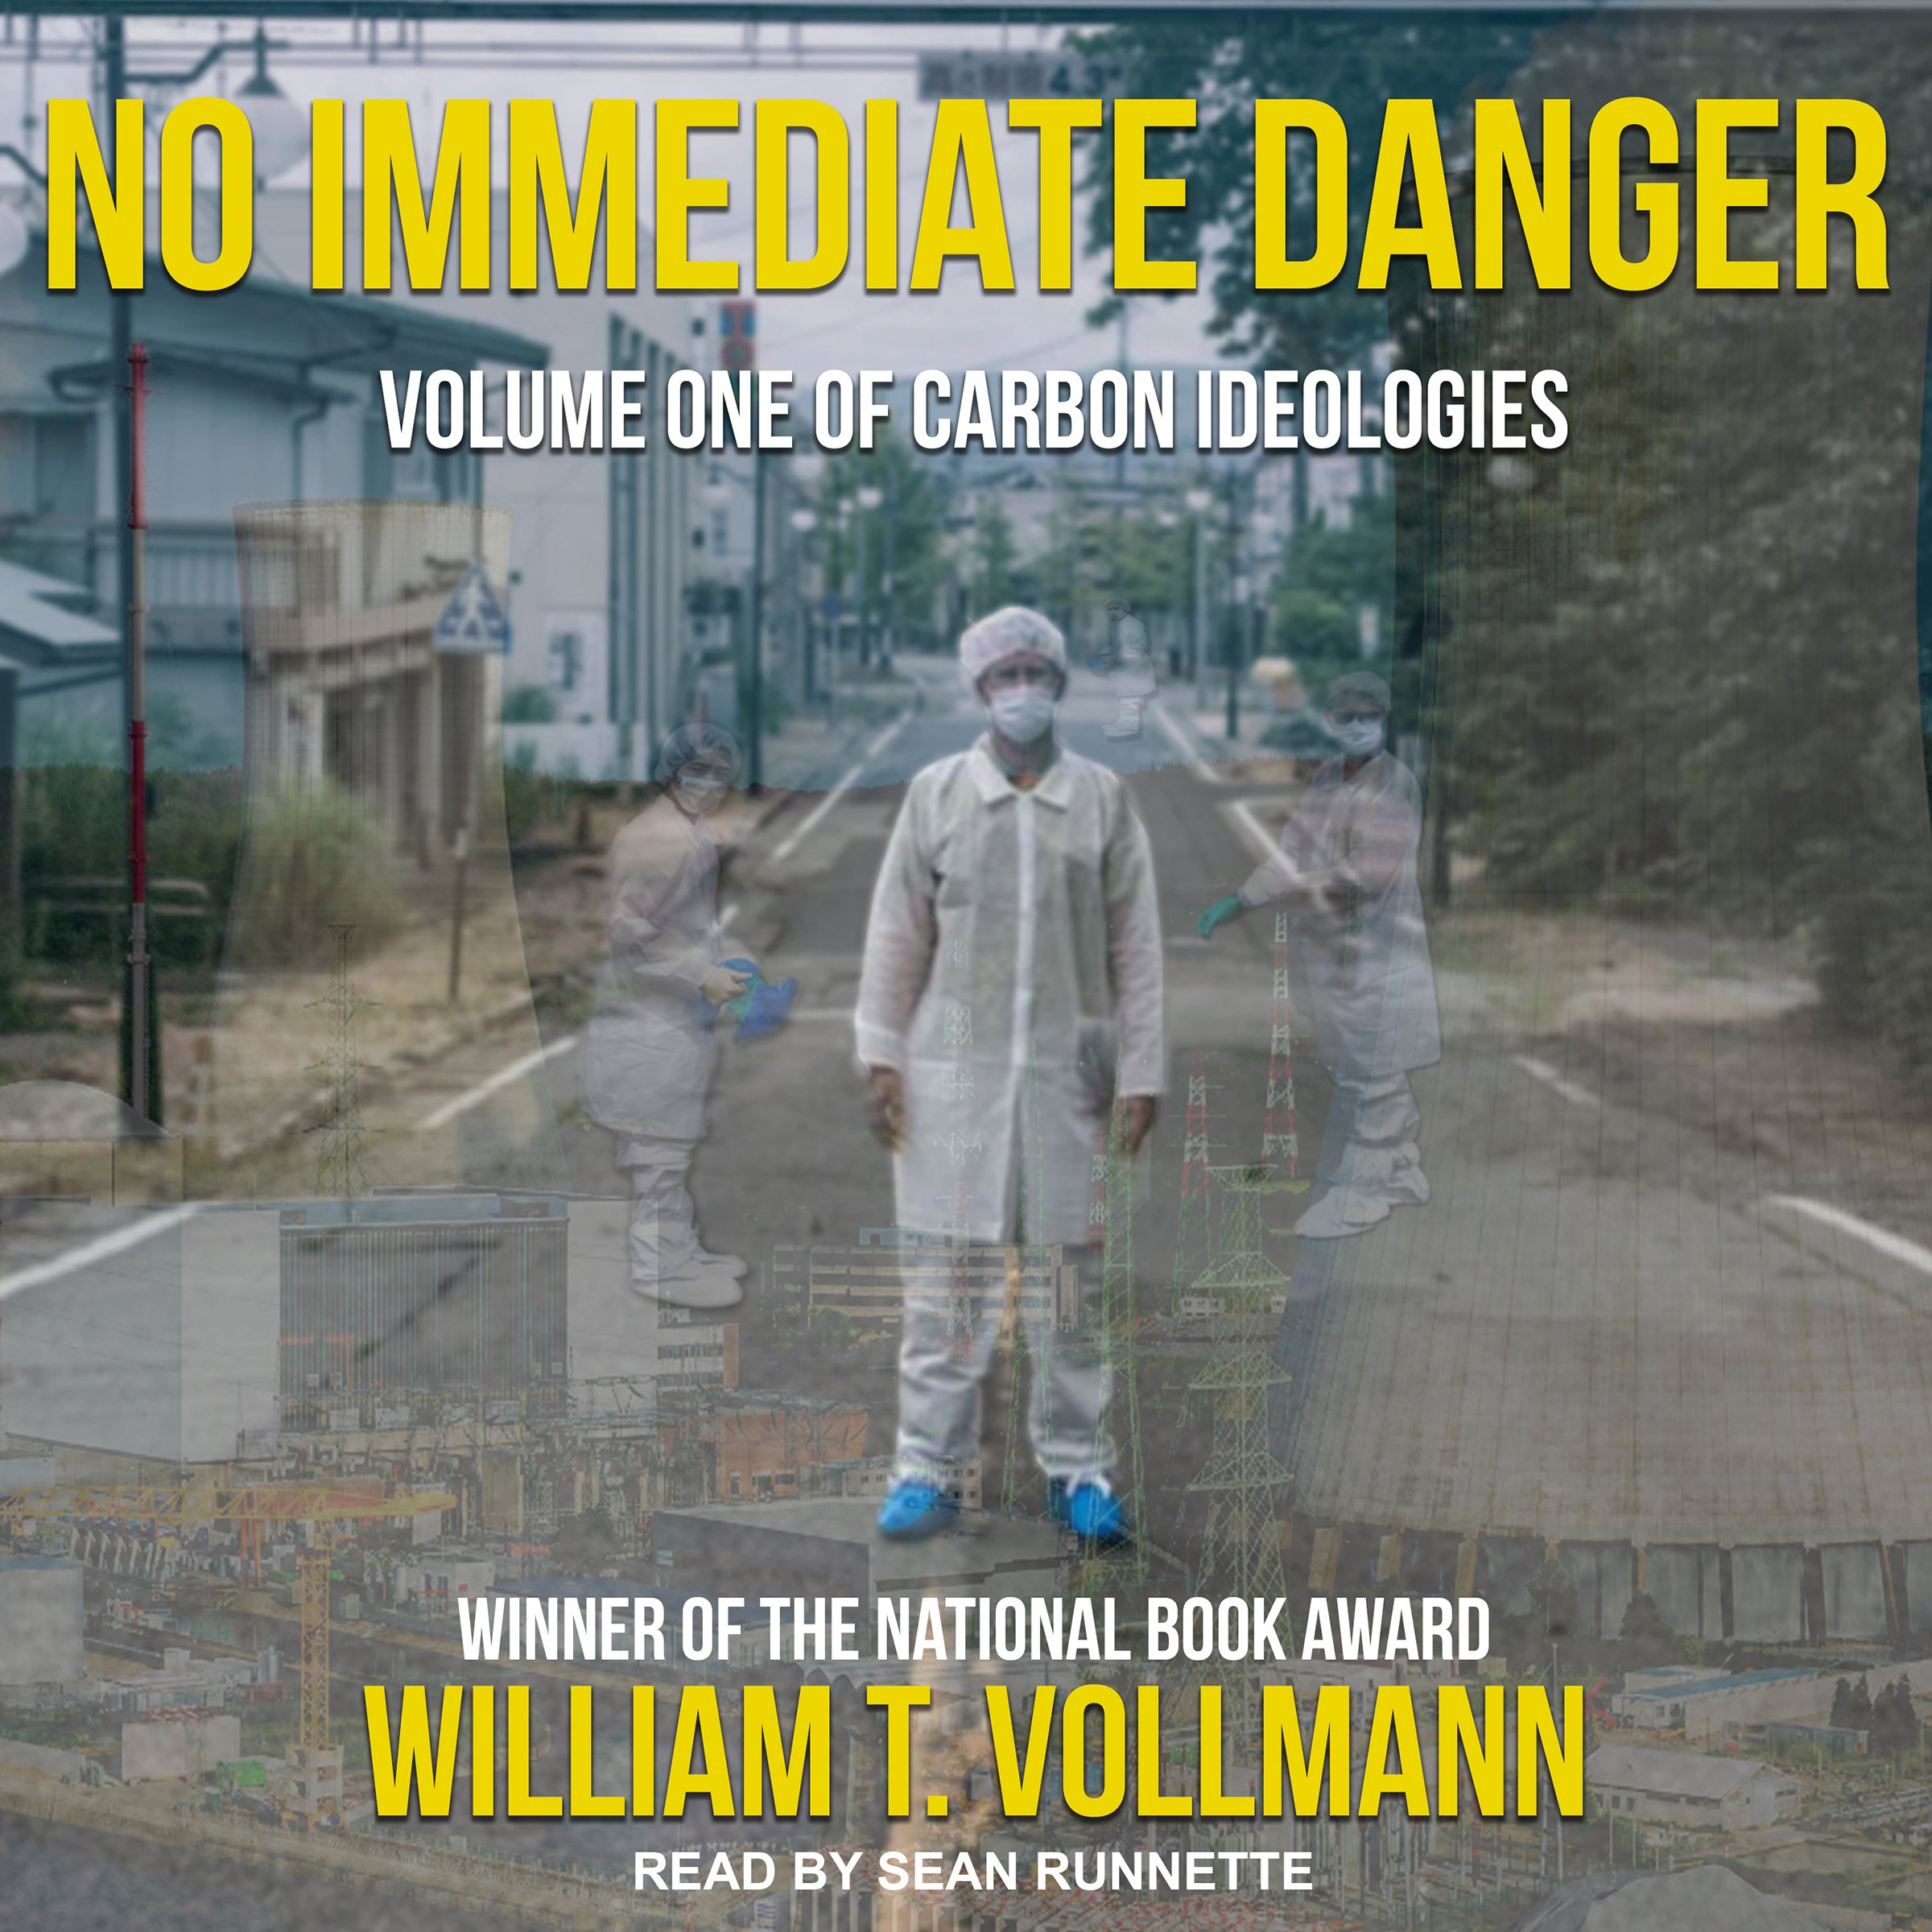 No Immediate Danger: Carbon Ideologies, Volume One